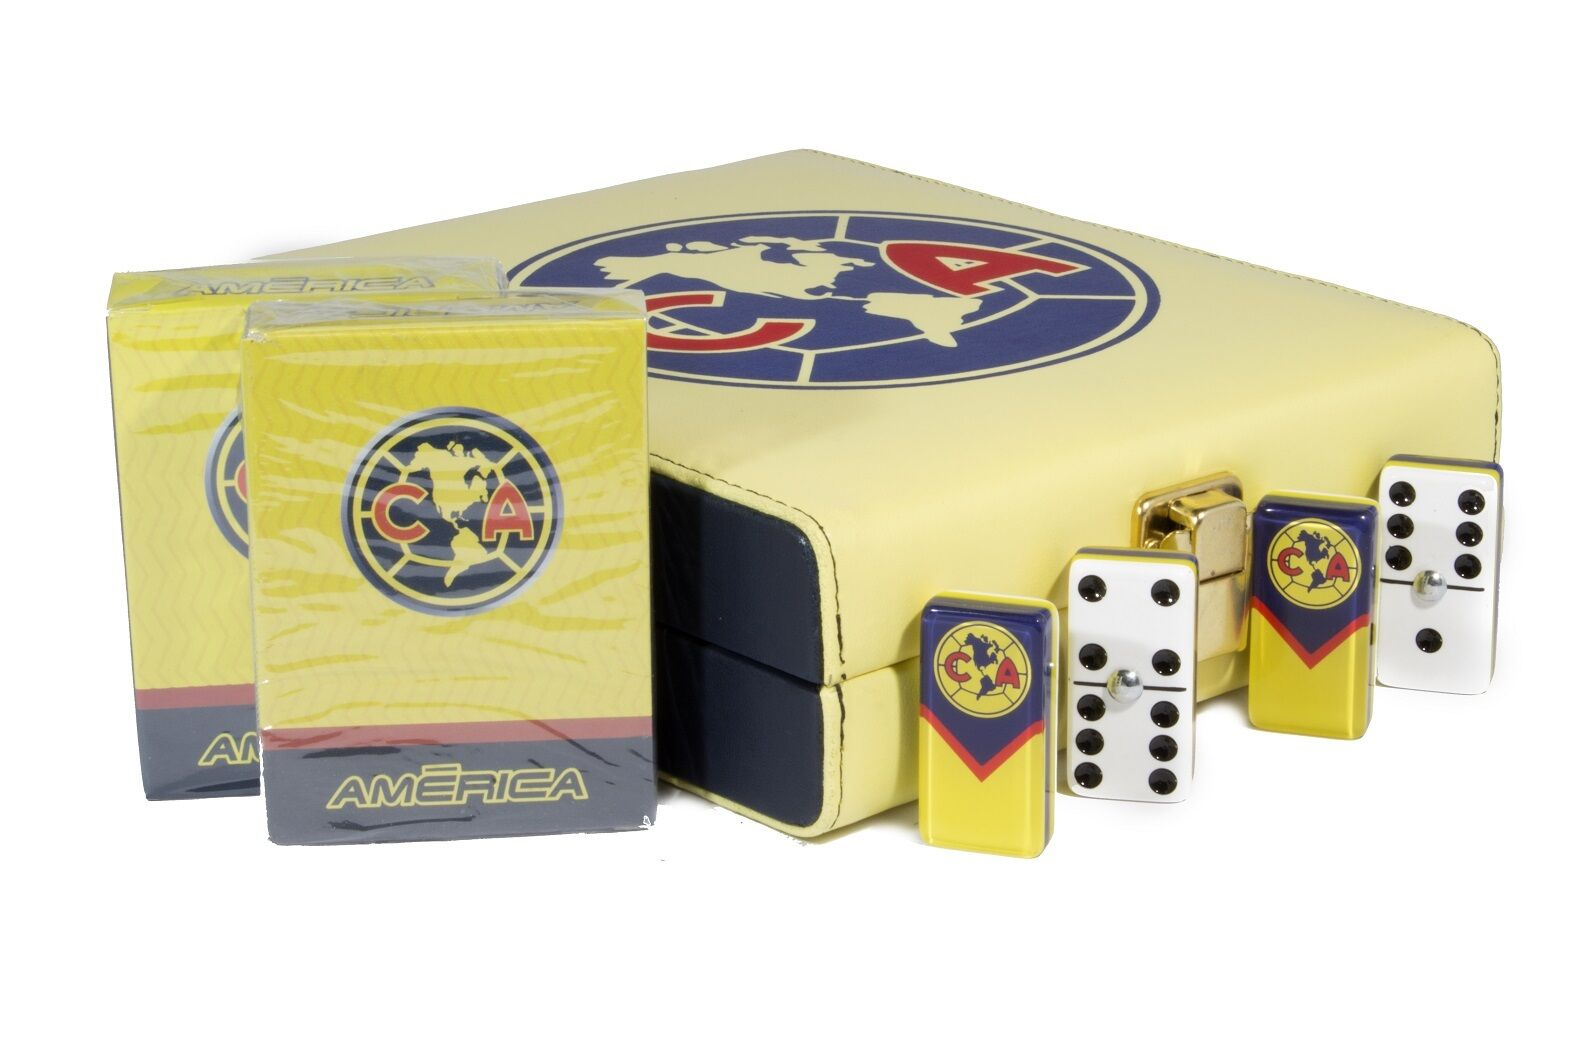 Aguilas Club America Deluxe Set 2 Games  Domino, 2 Poker Cards